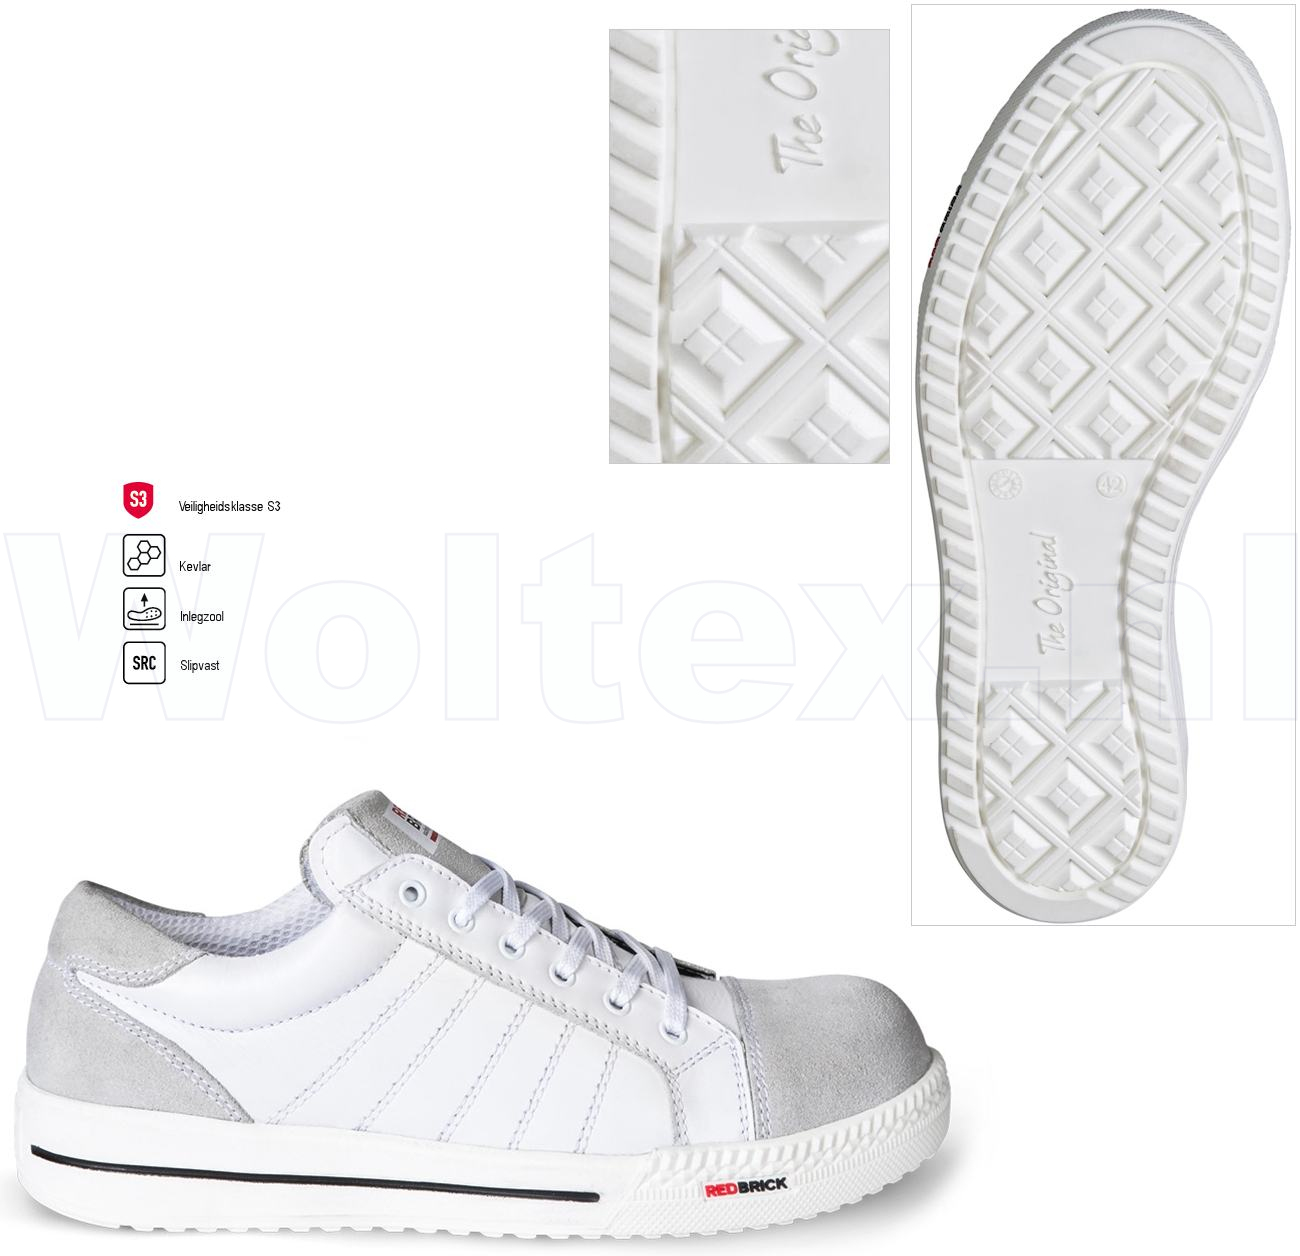 Safety Werkschoenen.Redbrick Safety Sneakers Originals S3 Werkschoenen Branco Wit 39